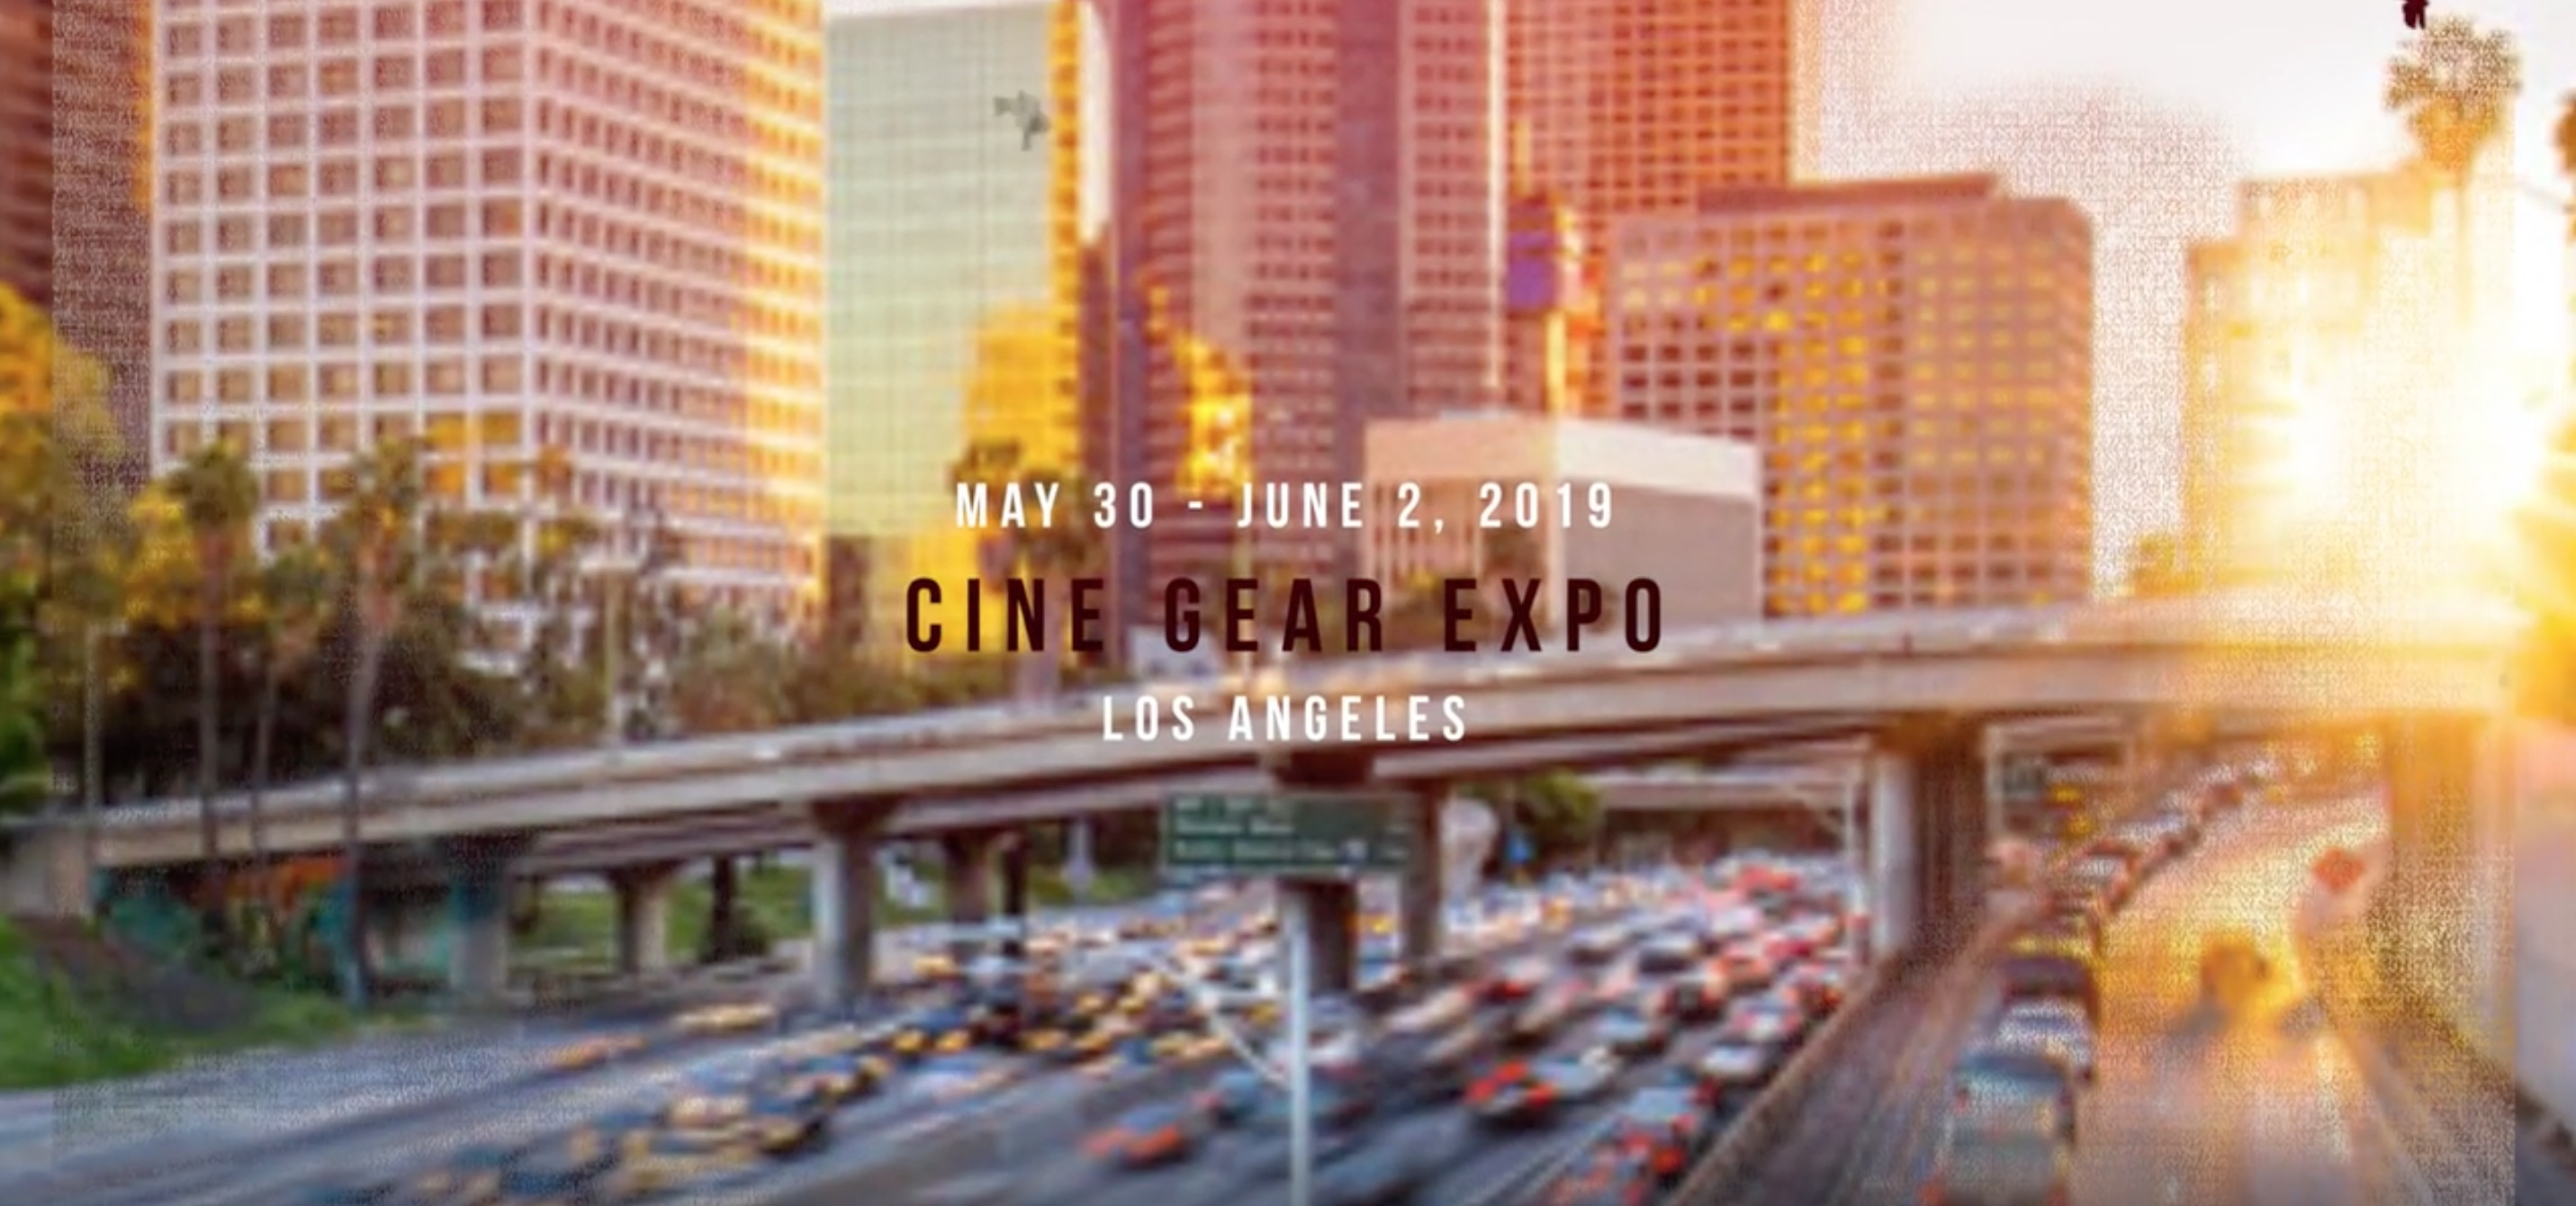 bebob at Cine Gear Expo Show in Los Angeles